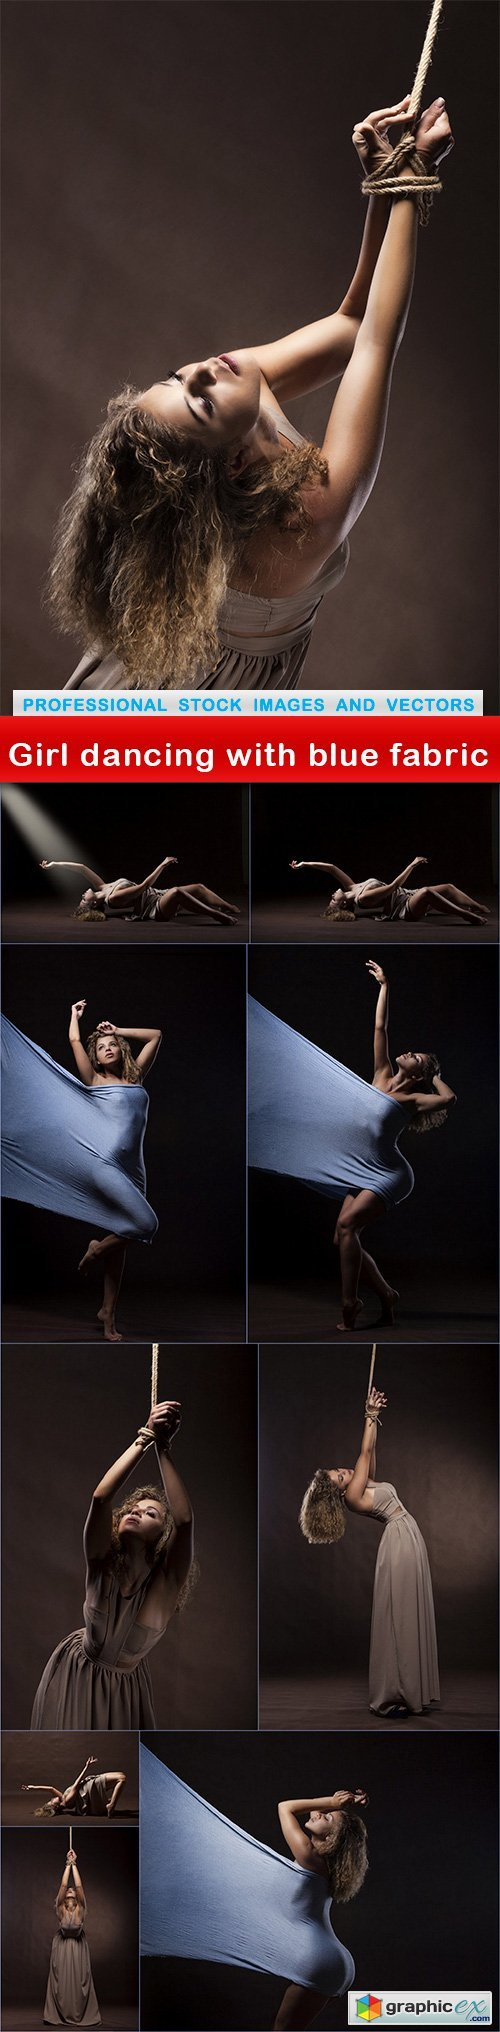 Girl dancing with blue fabric - 10 UHQ JPEG